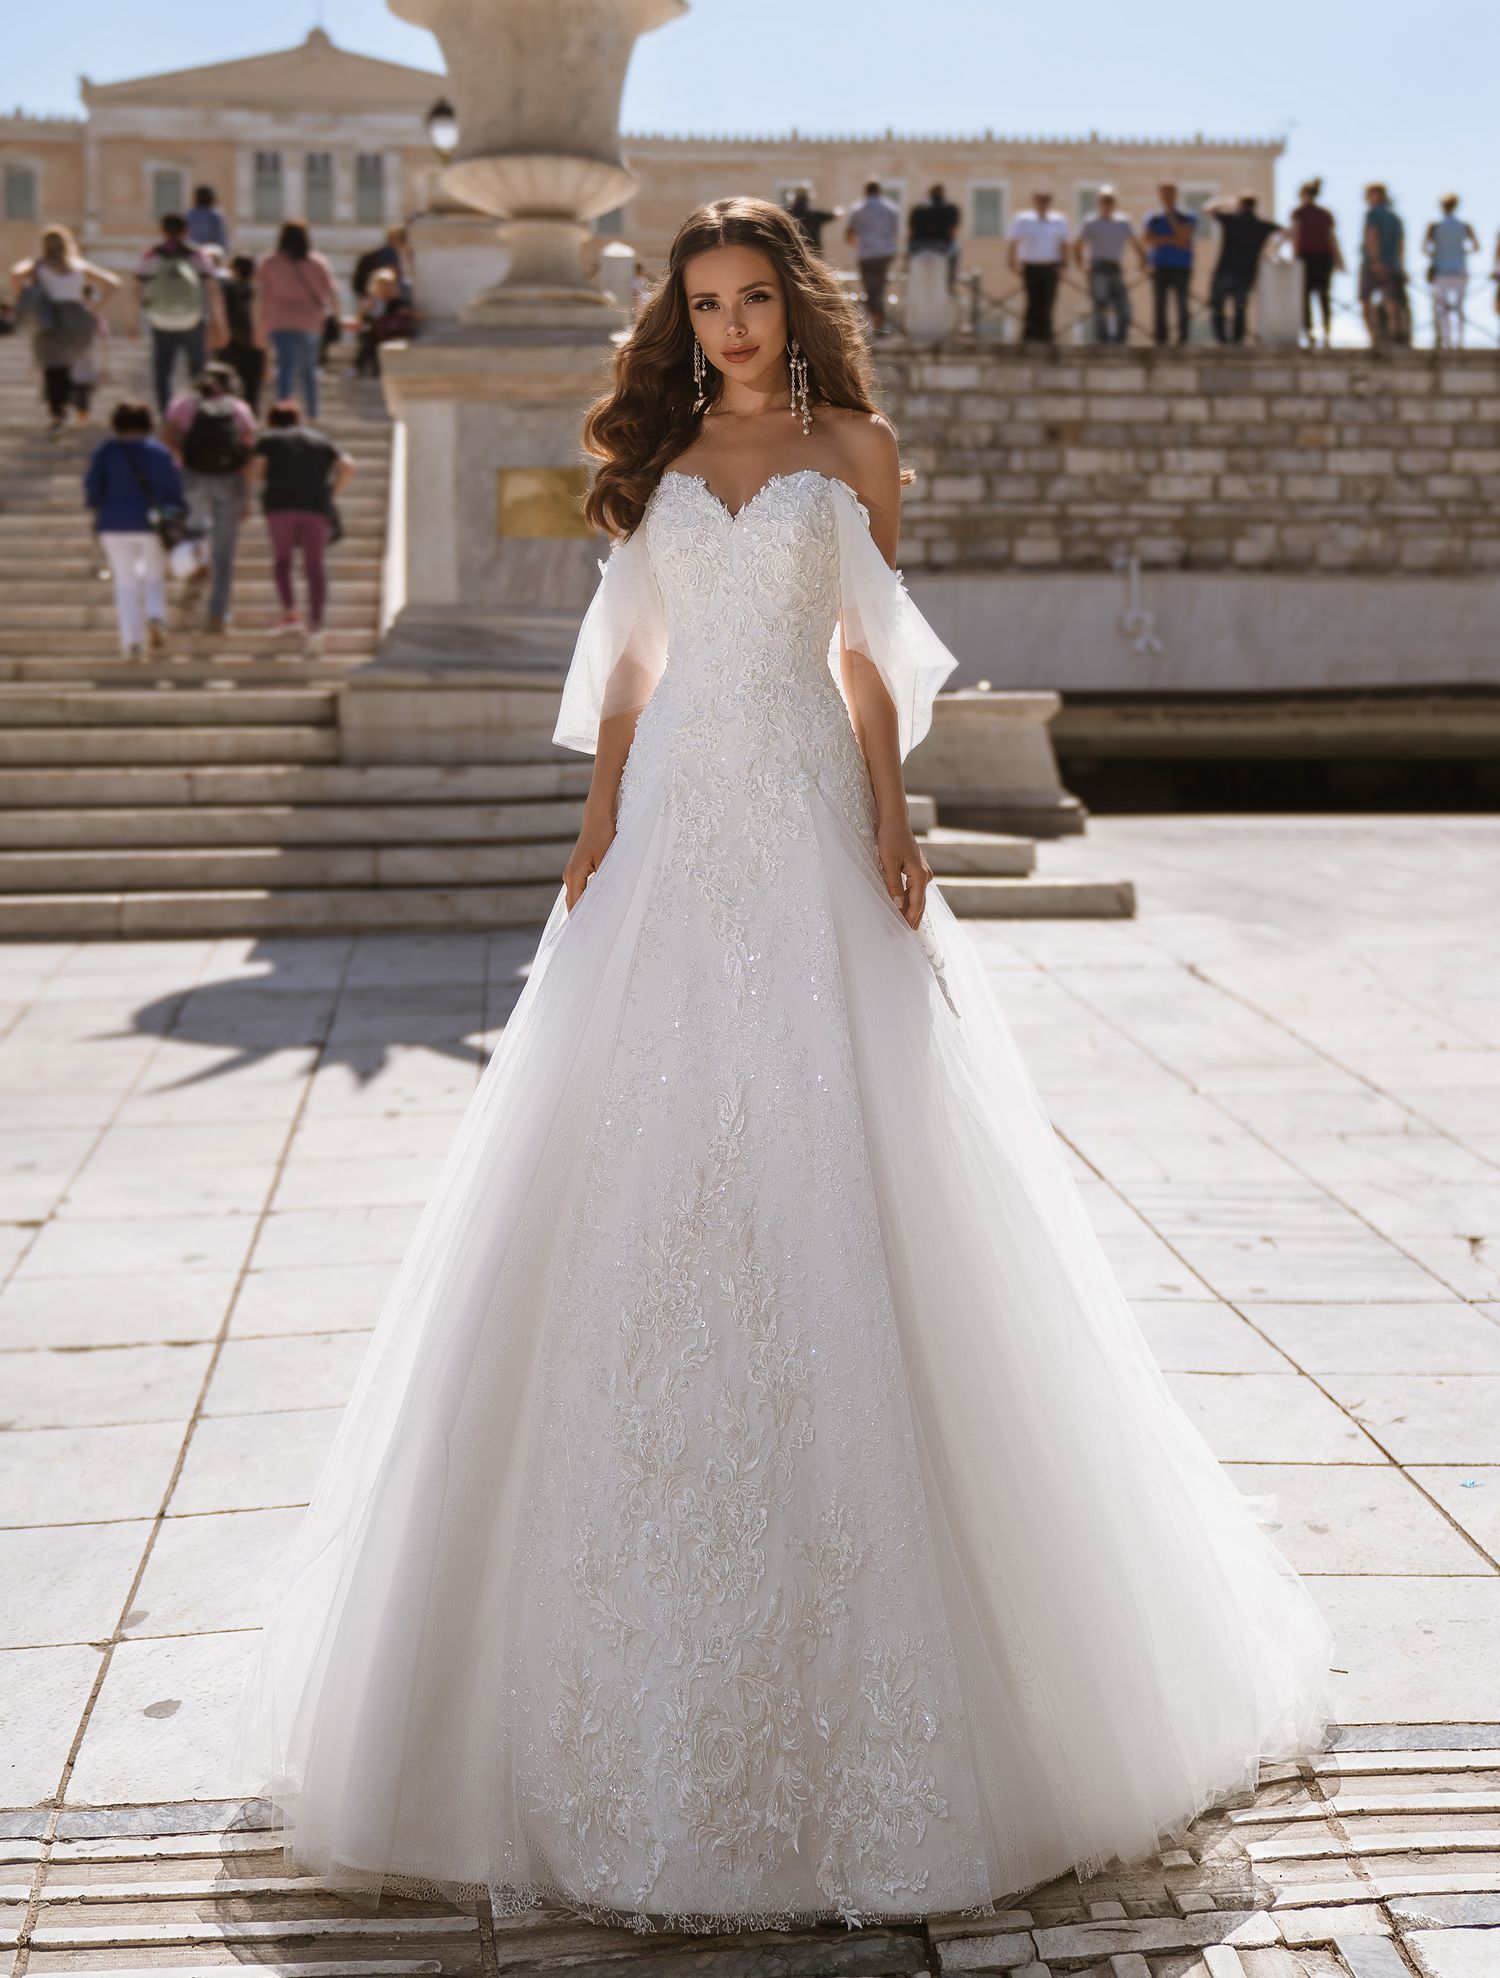 Wedding dress of classic «А» - silhouette with a train from TM Supernova wholesale-1